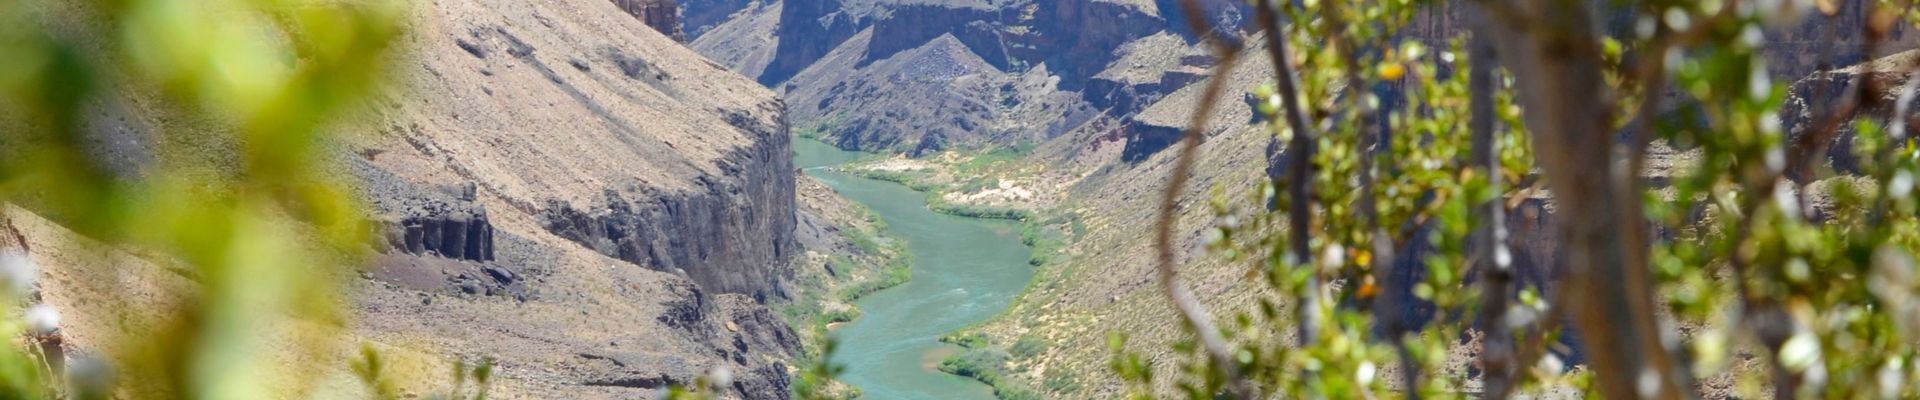 A rugged region of the North Canyon, surrounded by desert shrubs and nature.